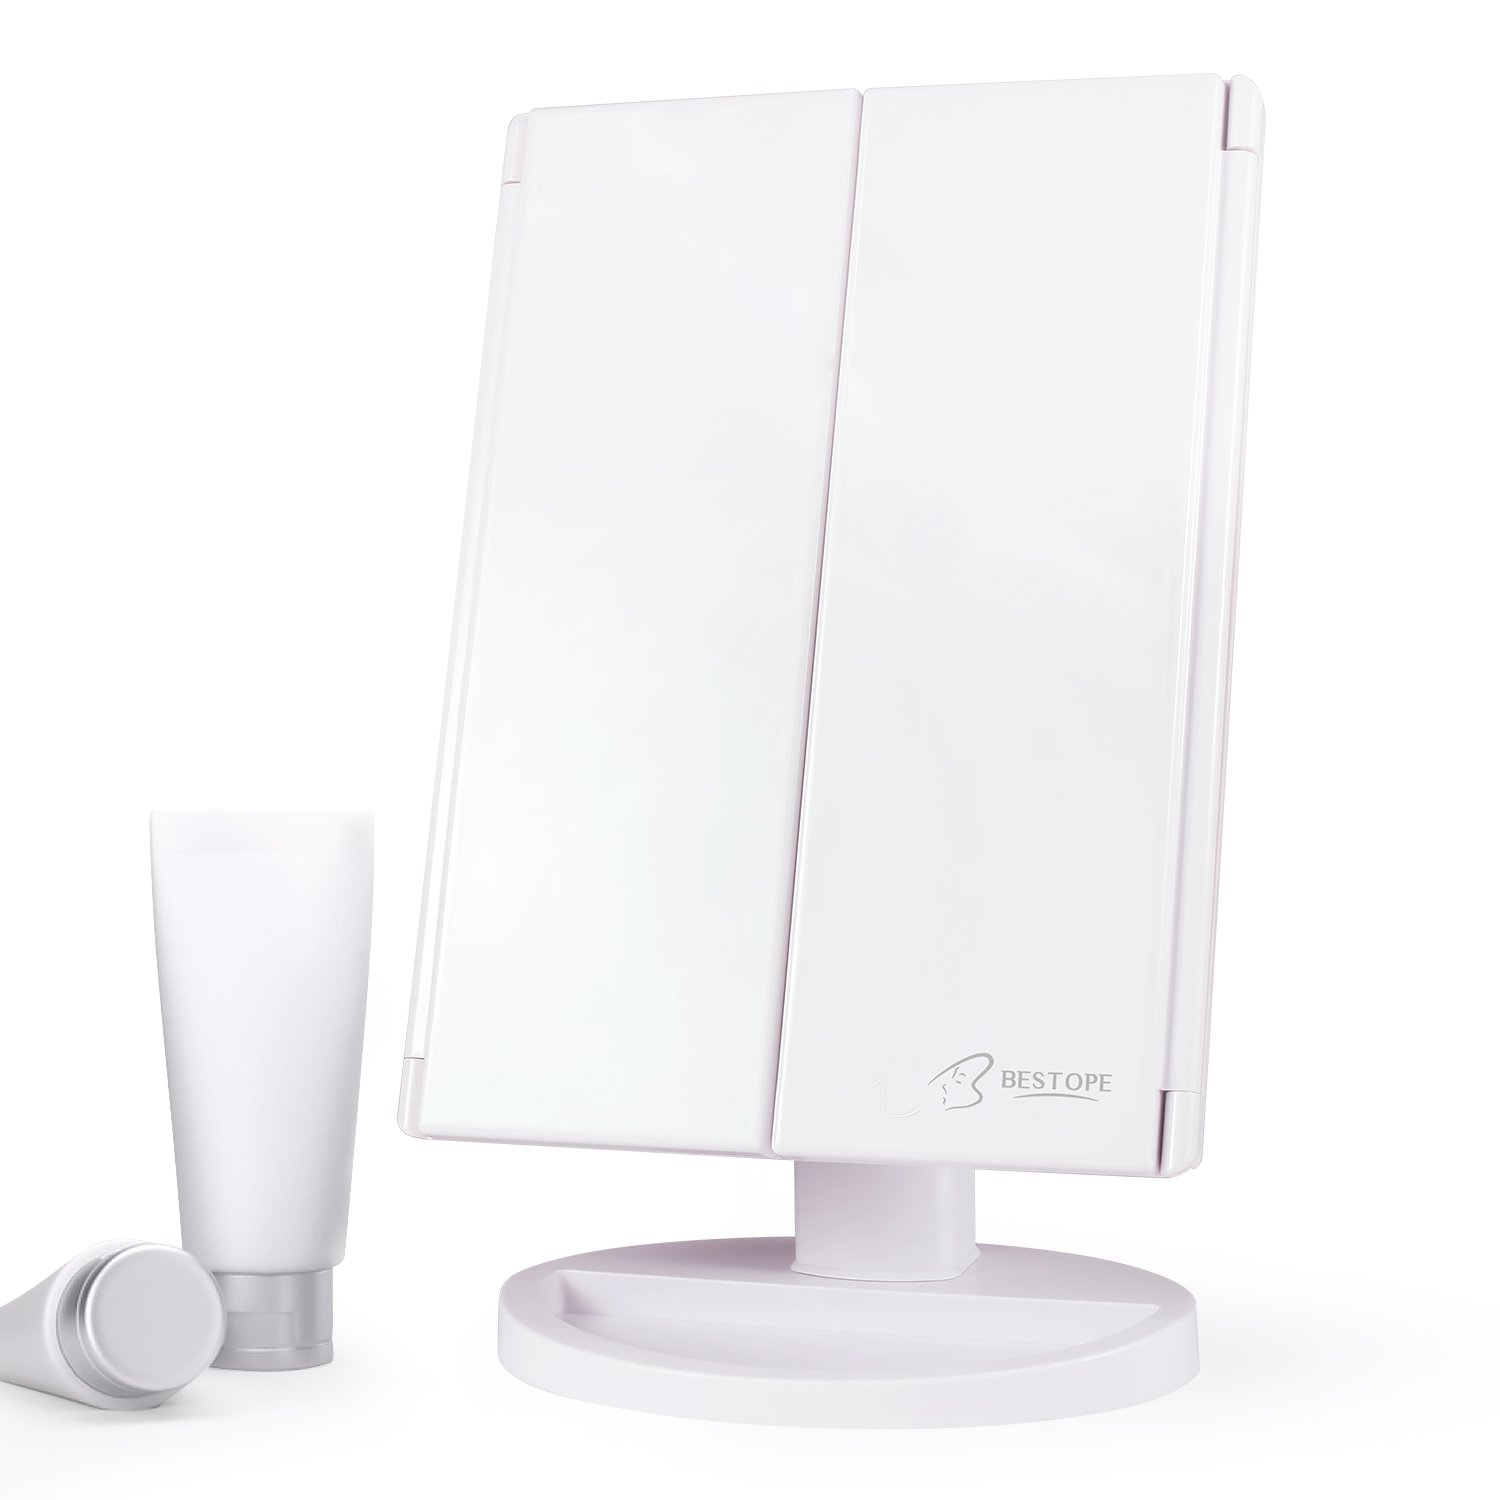 BESTOPE Makeup Vanity Mirror with 21 LED Lights 3X/2X Magnifying Touch Screen,Dual Power Supply,180° Adjustable Rotation,Countertop Cosmetic, 2 Pound by BESTOPE (Image #7)